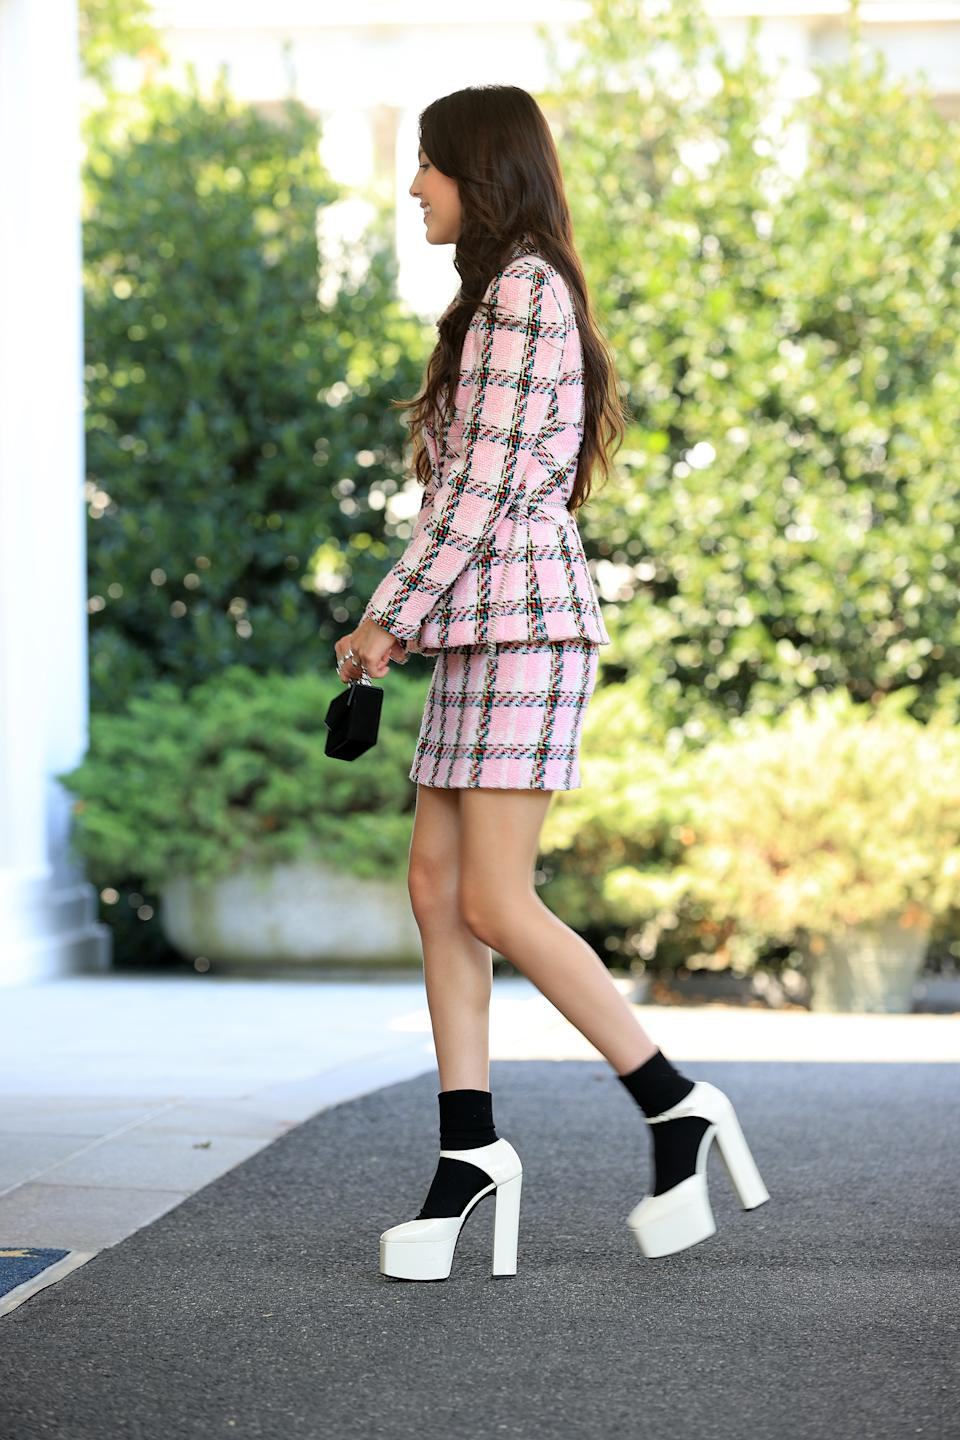 WASHINGTON, DC - JULY 14: Pop music star and Disney actress Olivia Rodrigo arrives at the White House on July 14, 2021 in Washington, DC. Rodrigo is partnering with the White House to promote COVID-19 vaccination outreach to her young fans. (Photo by Chip Somodevilla/Getty Images)